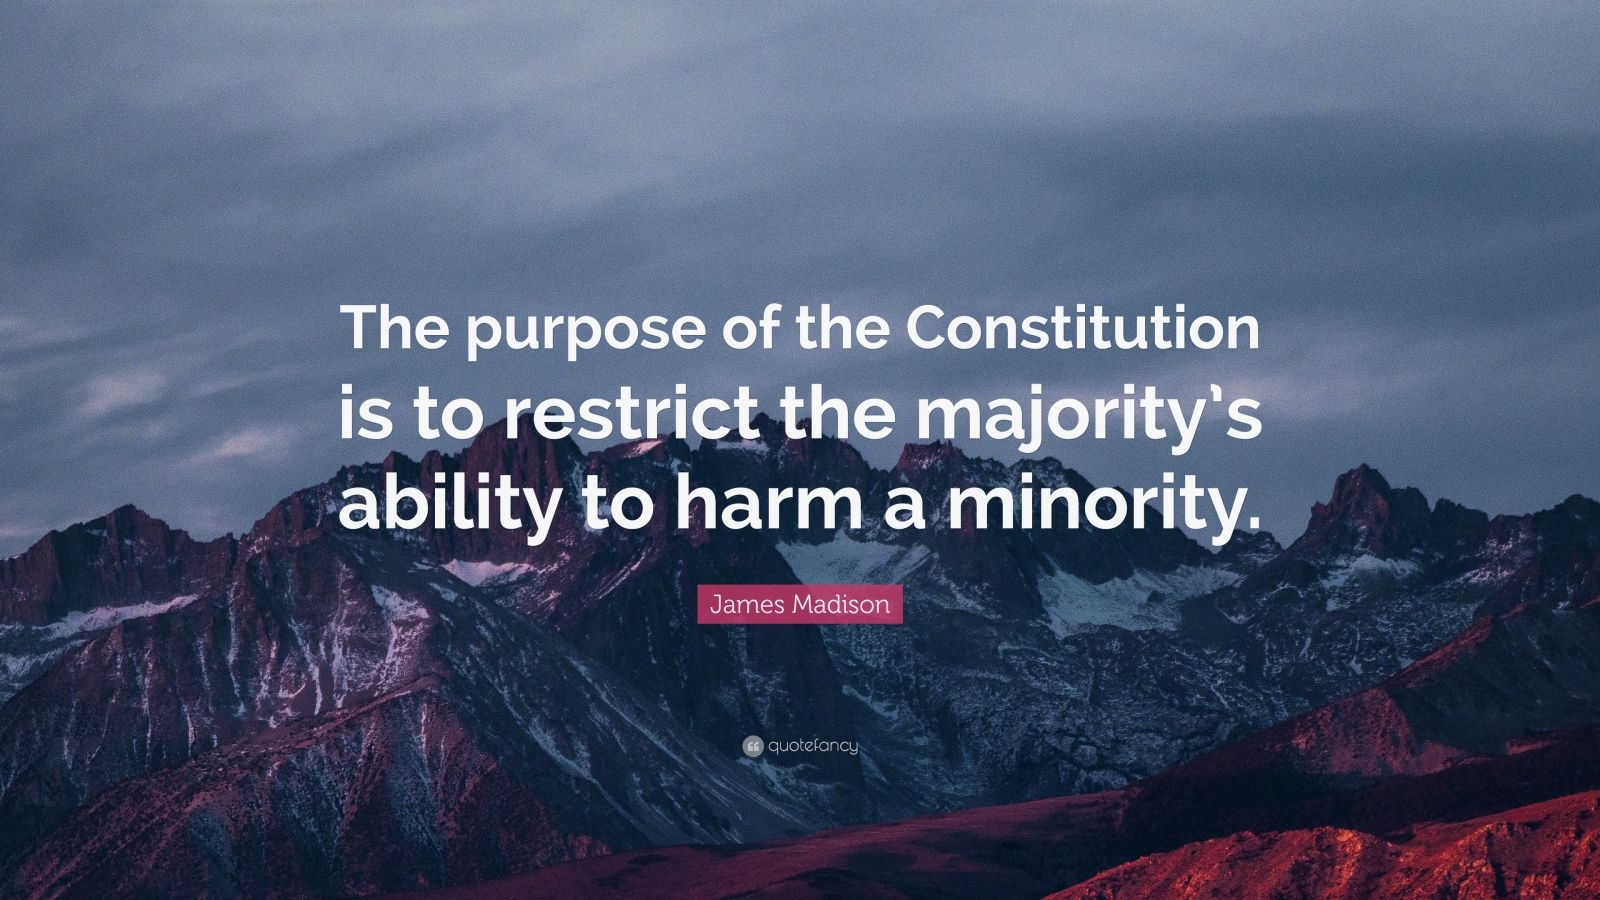 """James Madison Quote: """"The purpose of the Constitution is to restrict the majority's ability to harm a minority."""""""